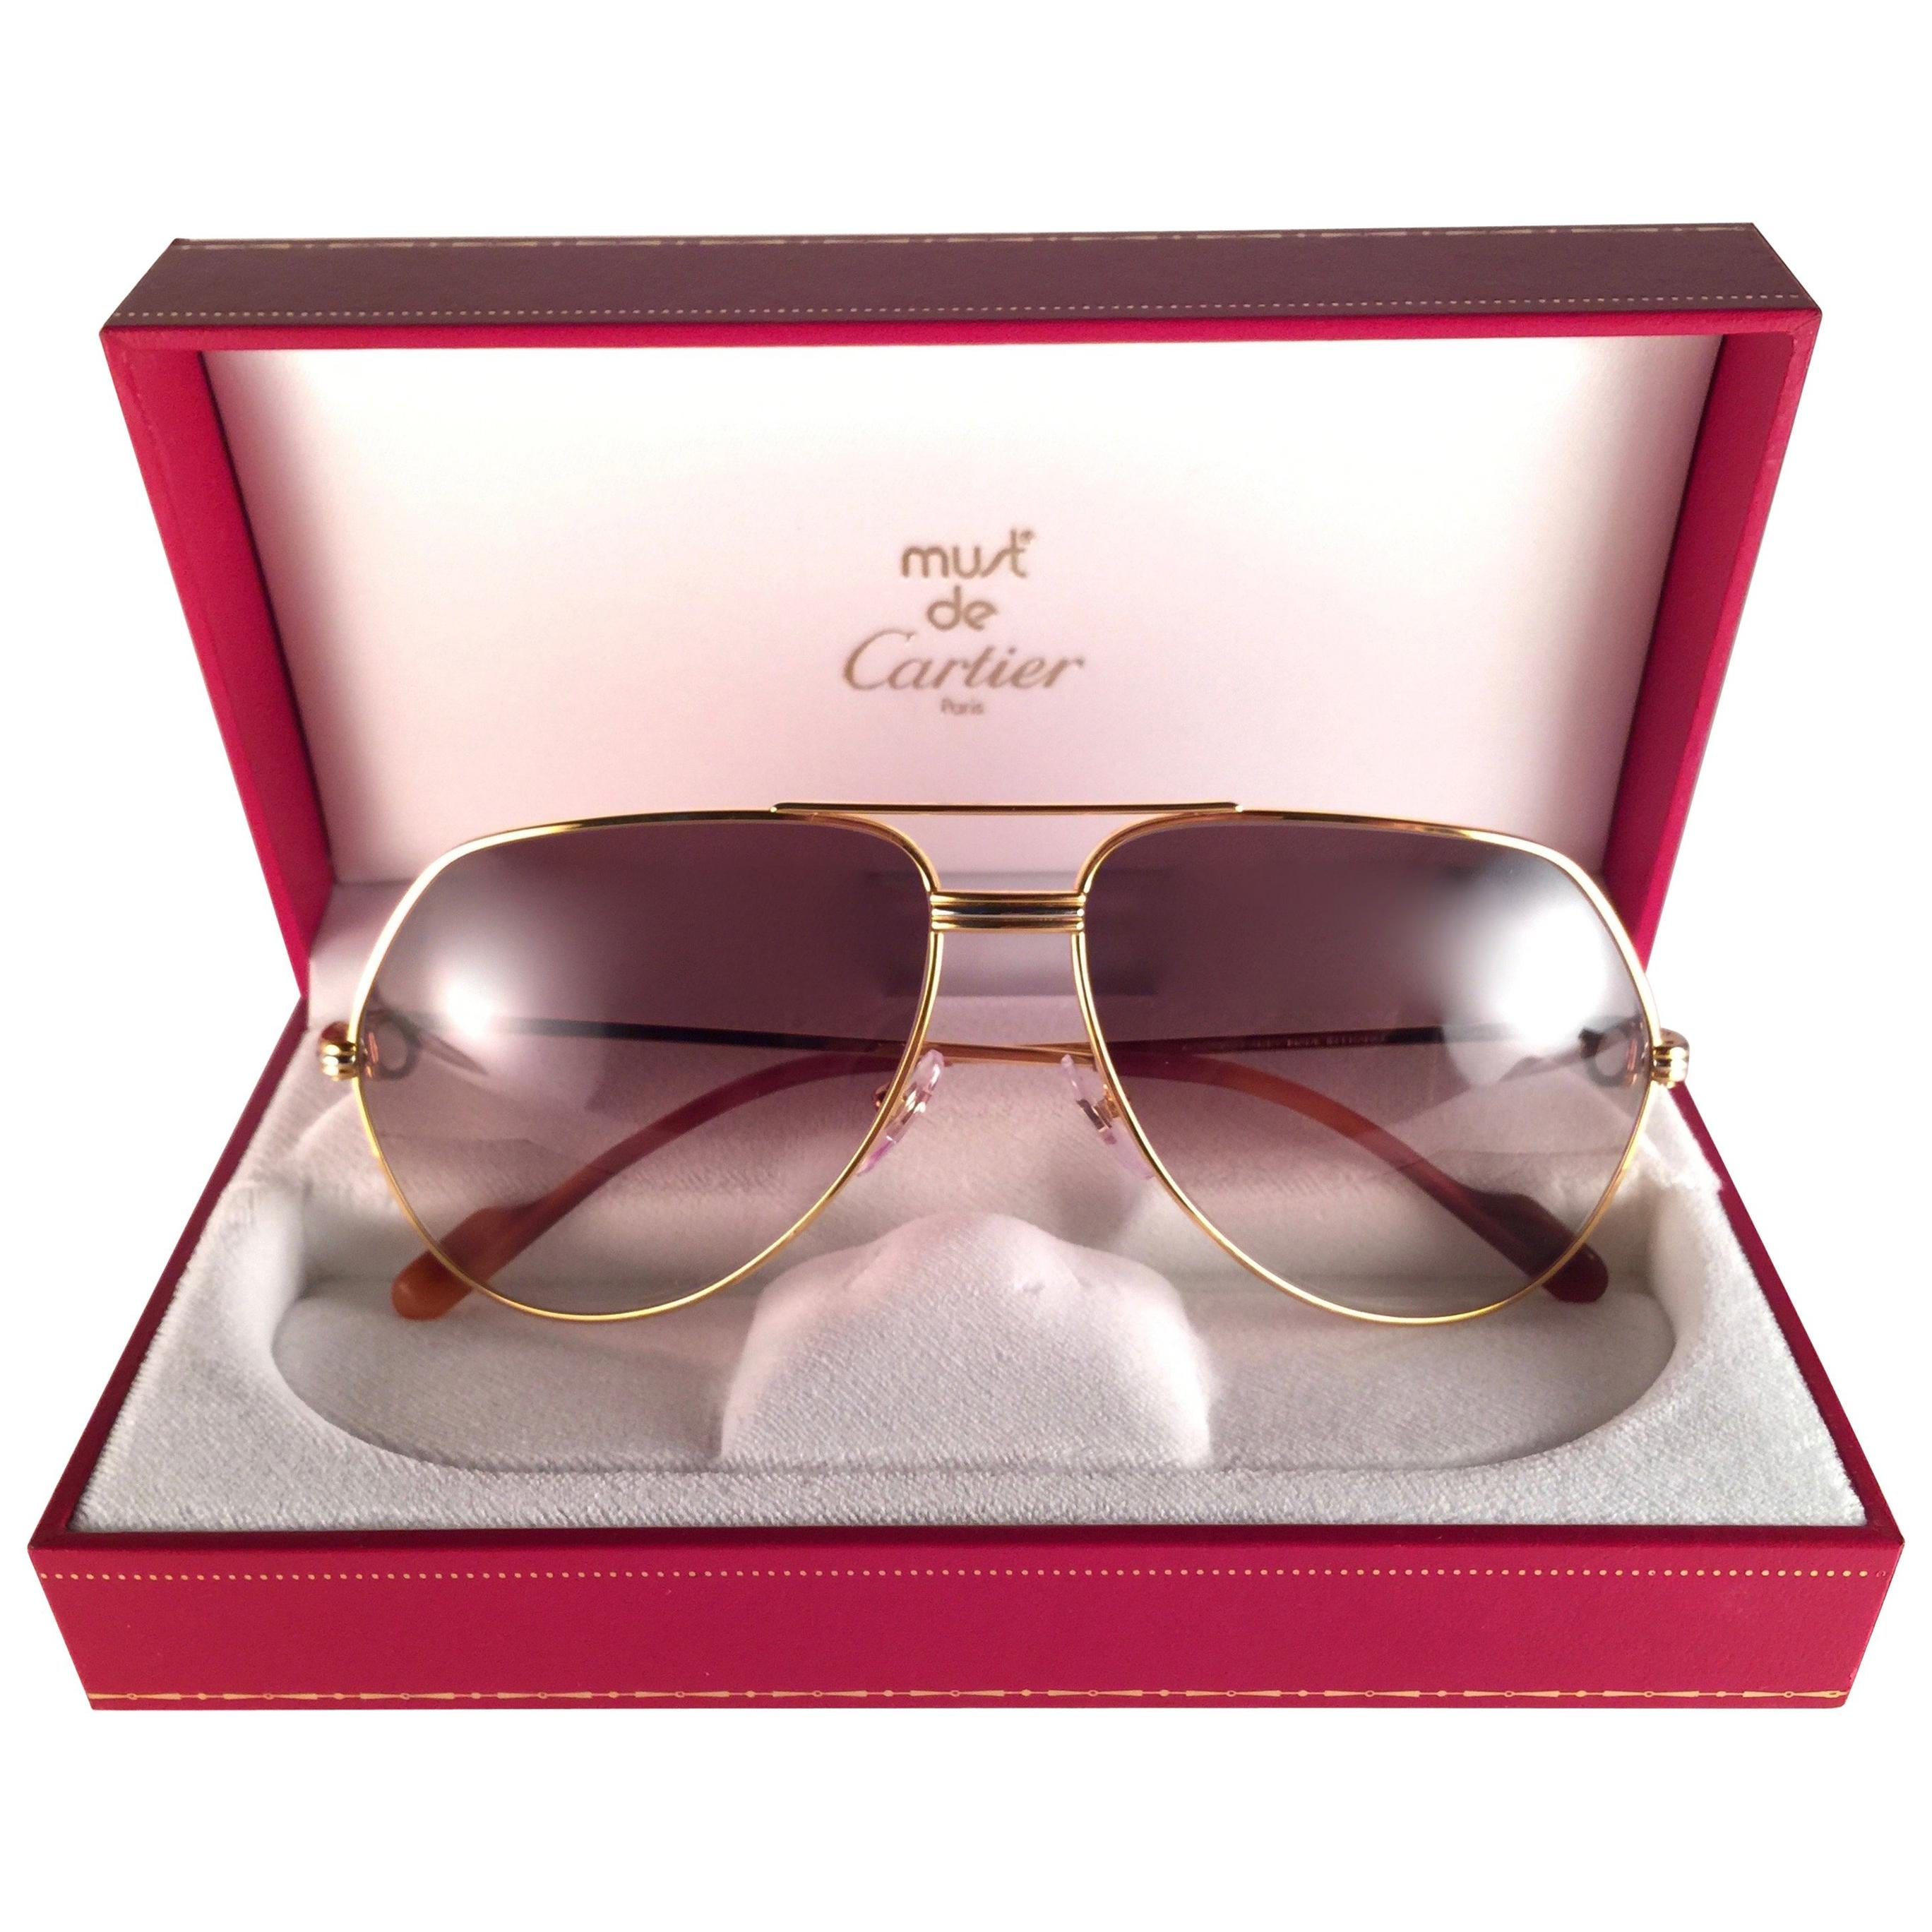 cb8a46a016 Vintage Cartier Sunglasses - 160 For Sale at 1stdibs